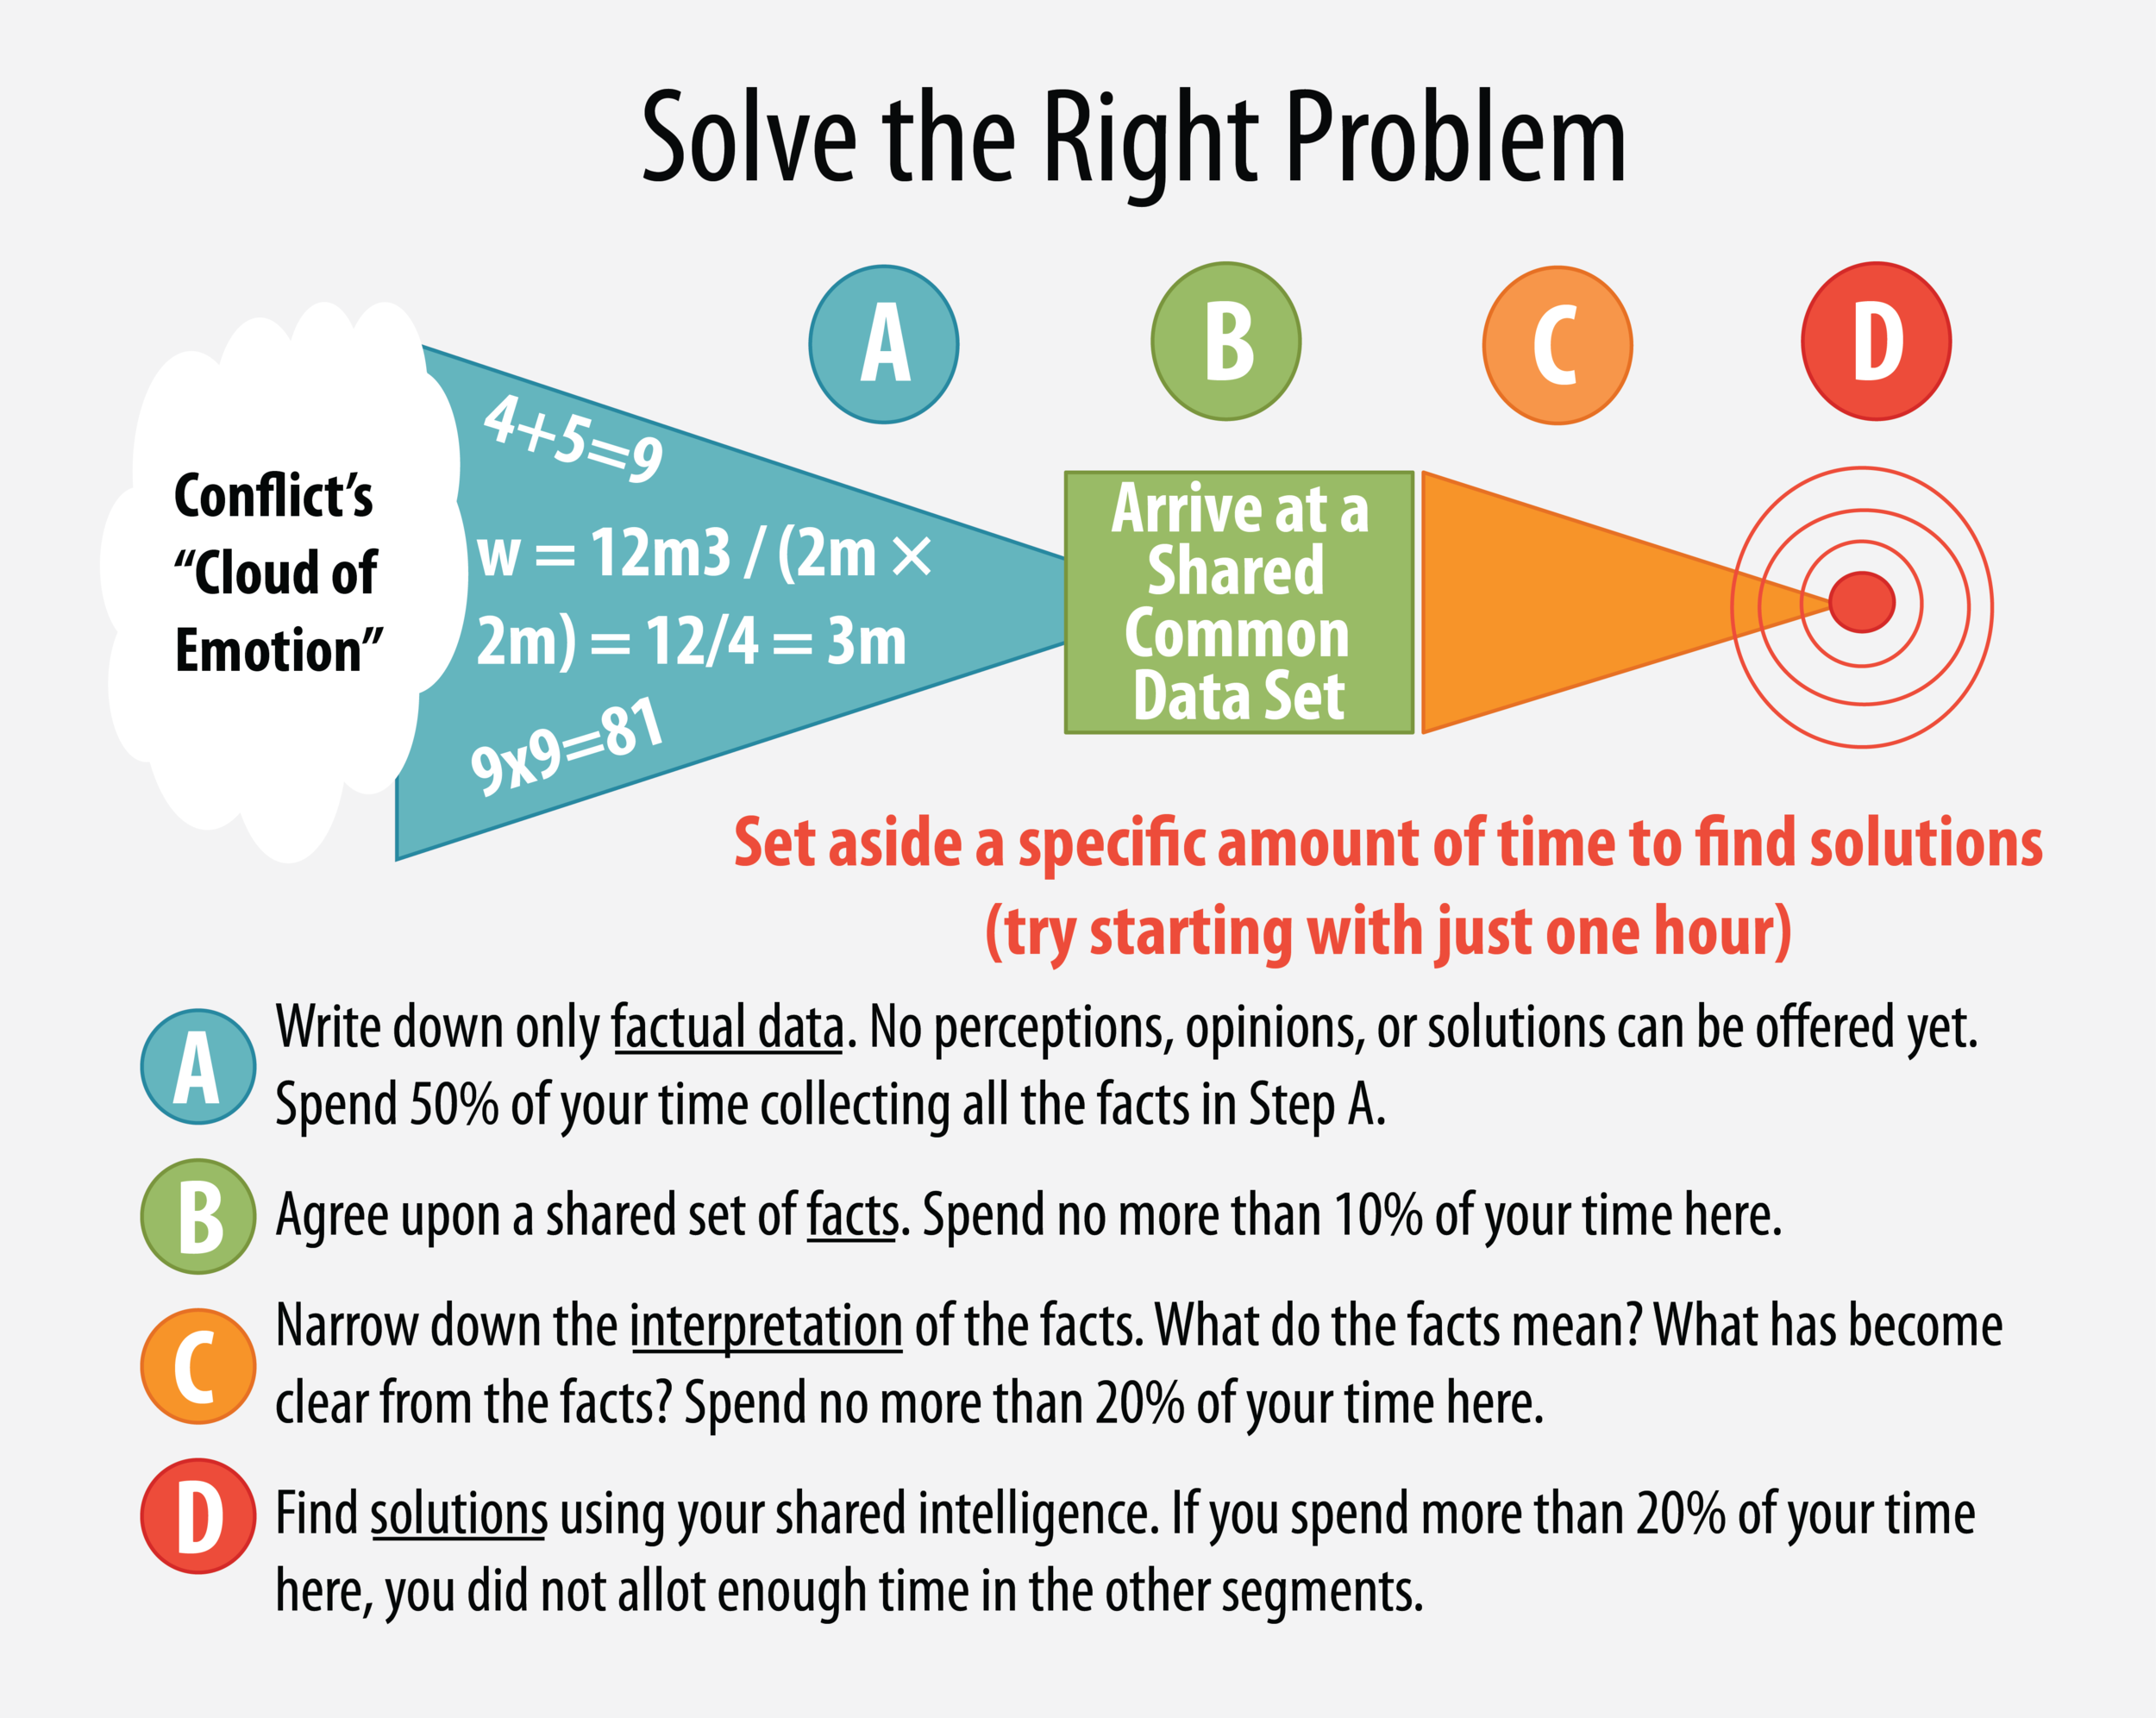 How to solve the right problem in conflict management